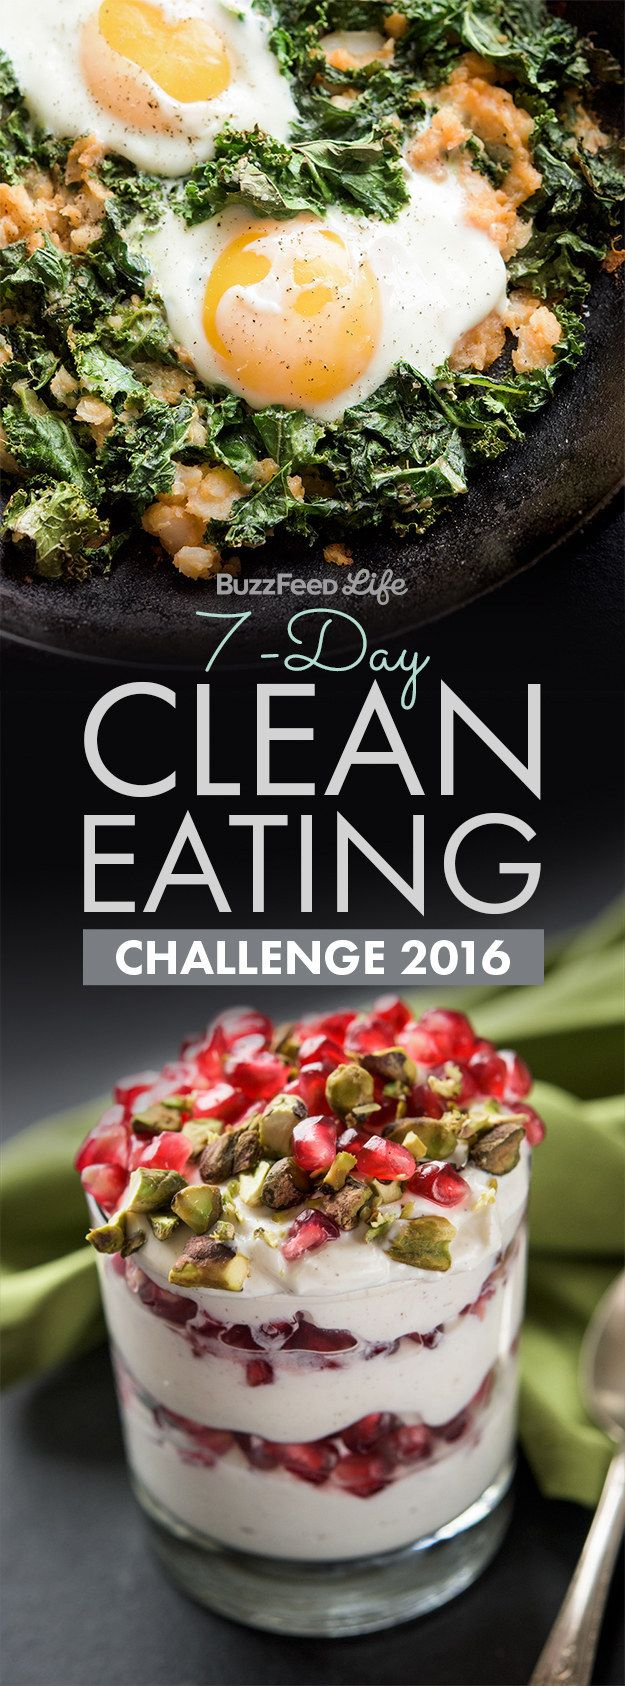 For a REALLY healthy week, take BuzzFeed's 7-Day Clean Eating Challenge!